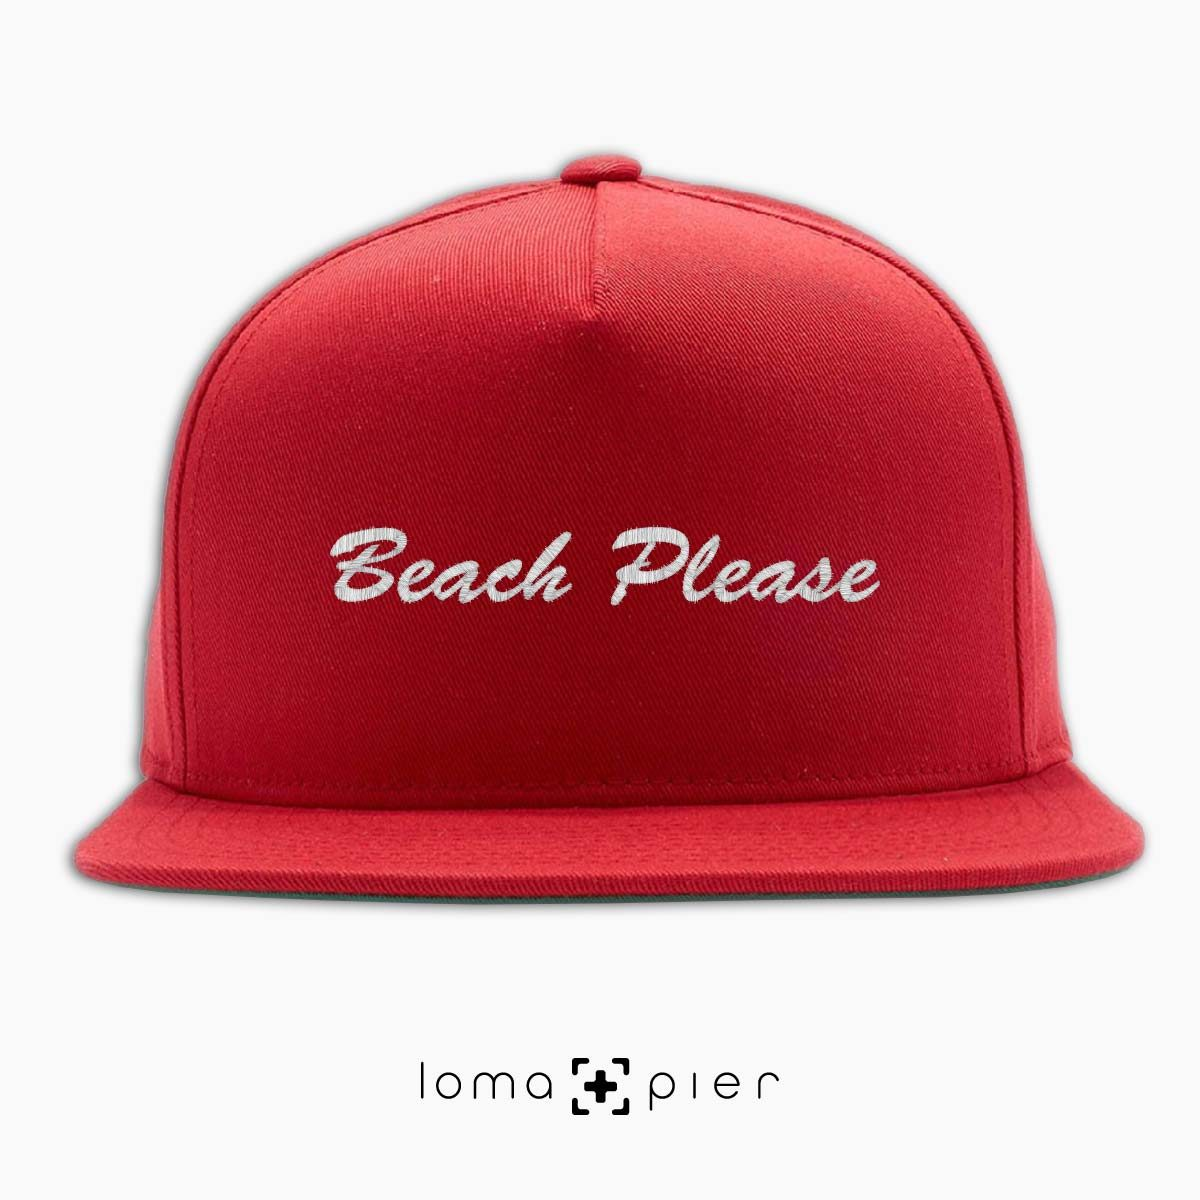 BEACH PLEASE embroidered on a red classic snapback hat with white thread by loma+pier hat store